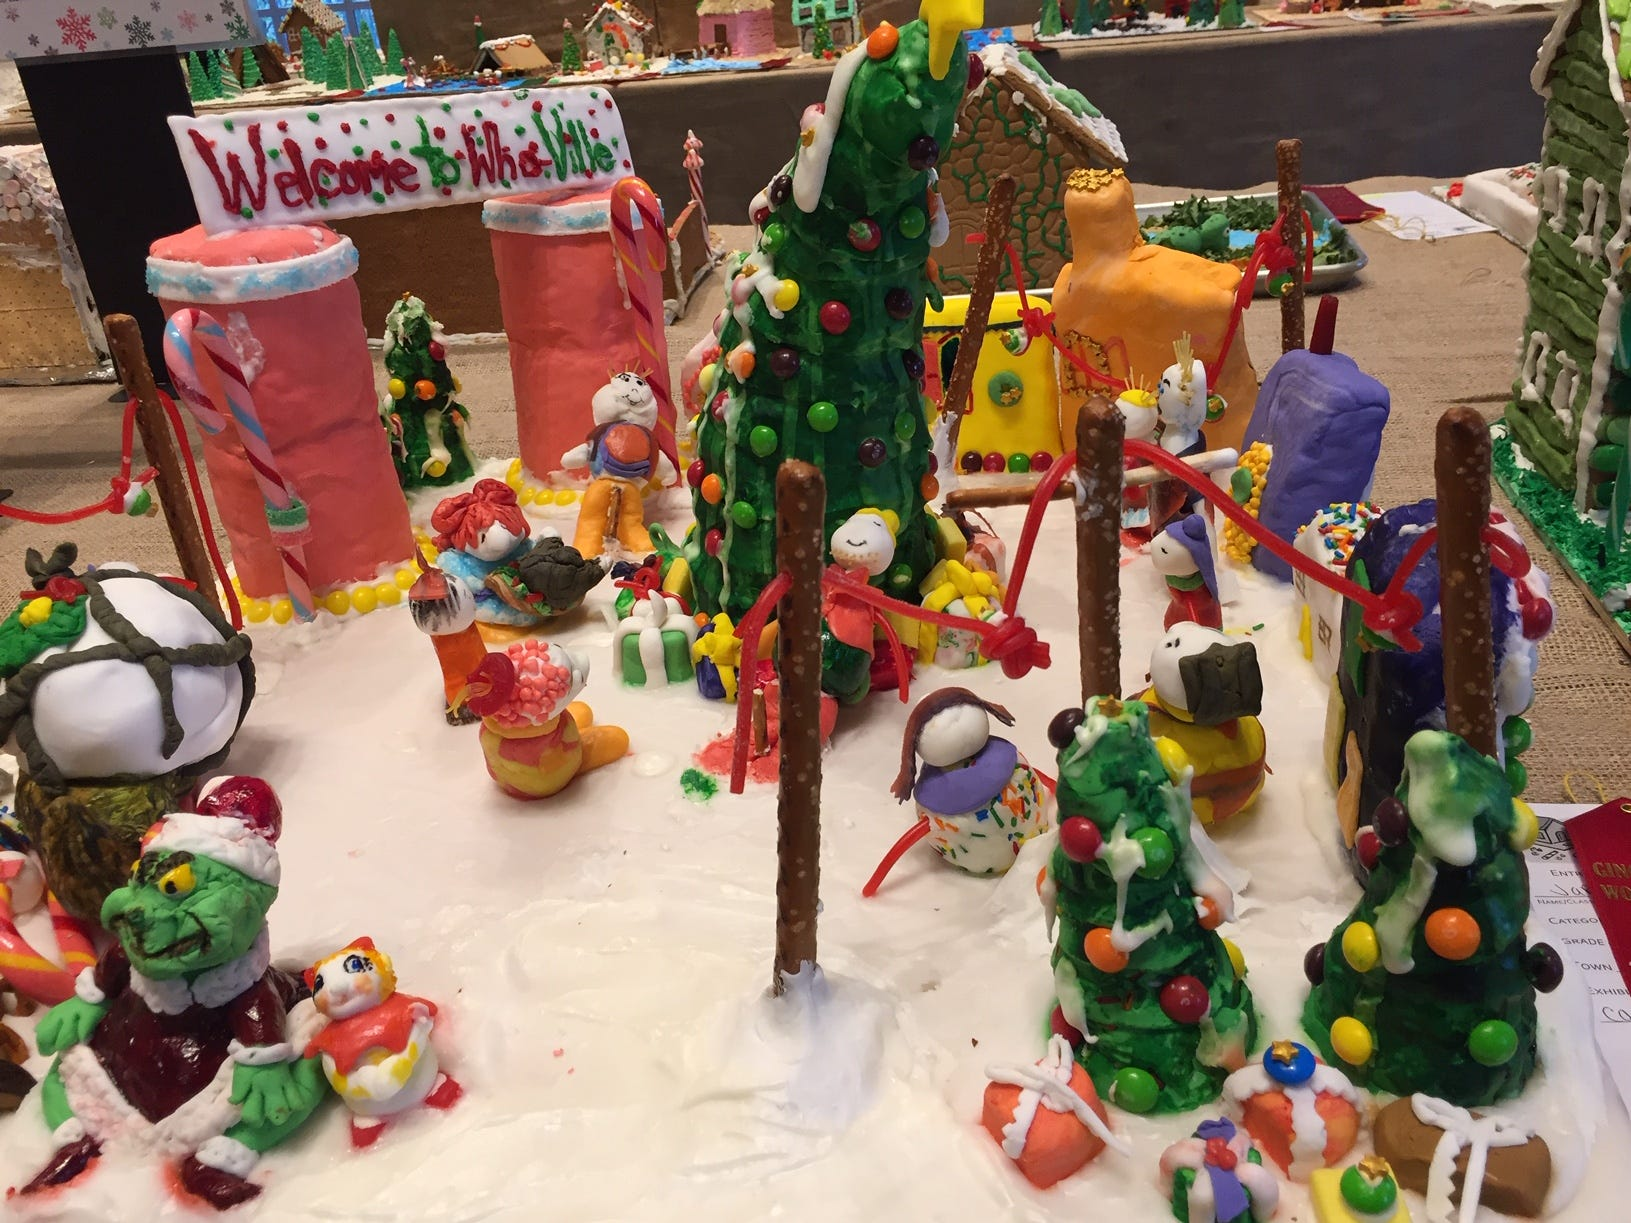 """Christmas In Whoville"" from Mountain Lakes at the 2018 Gingerbread Wonderland at the Frelinghuysen Arboretum. Family category."